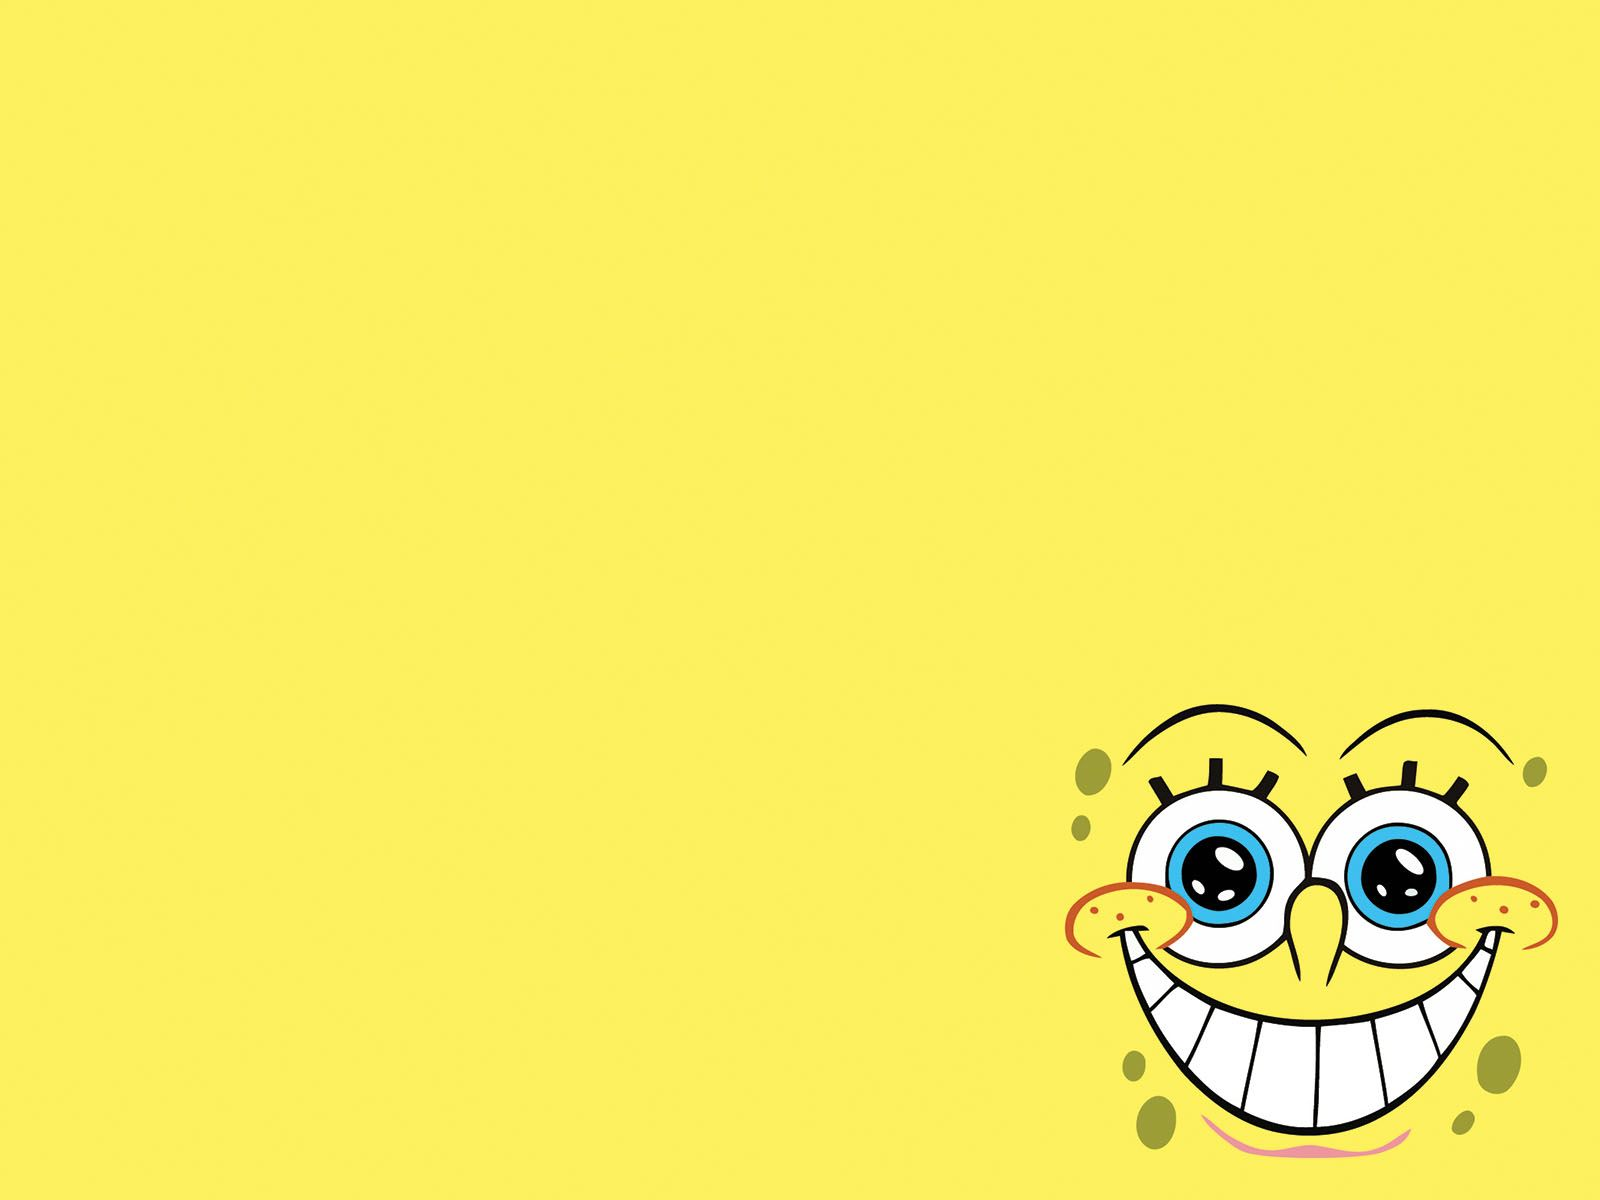 Spongebob Powerpoint Templates - Cartoons - Free PPT Backgrounds and ...